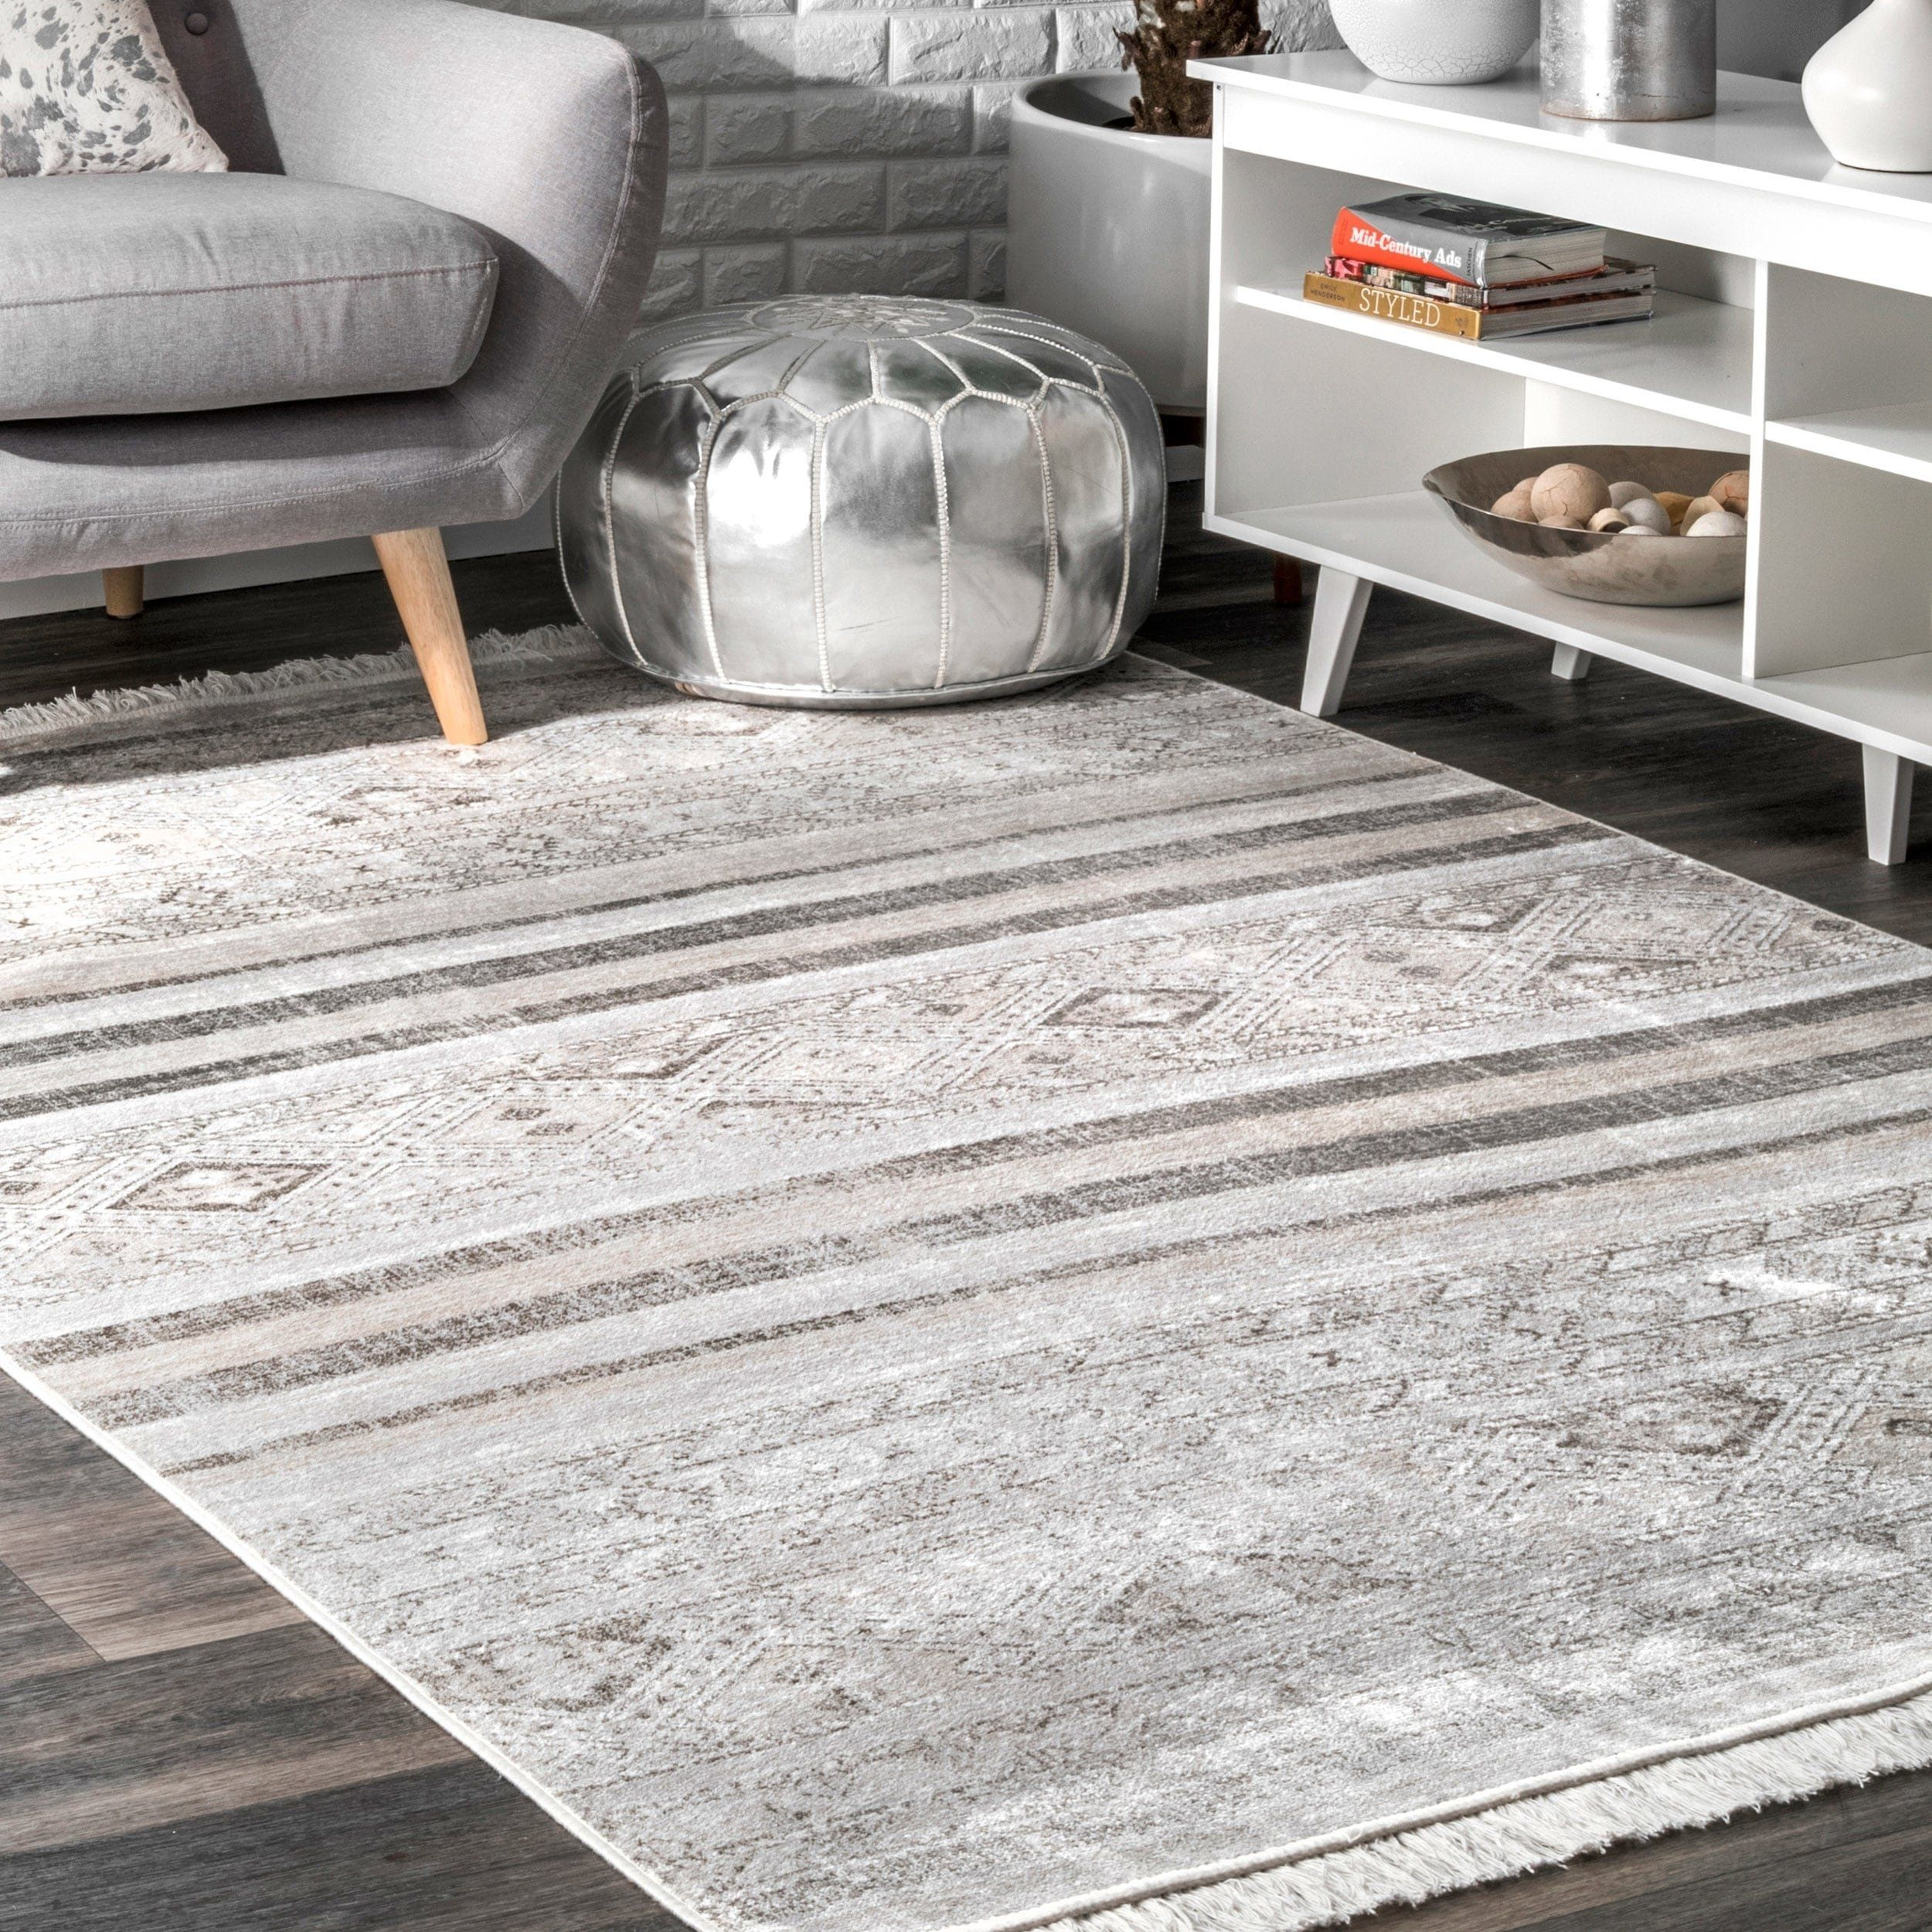 Porch Den Soto Grey Tribal Ombre Tassel Area Rug 10 X 14 10 X 14 Gray Area Rugs Cool Rugs Rugs